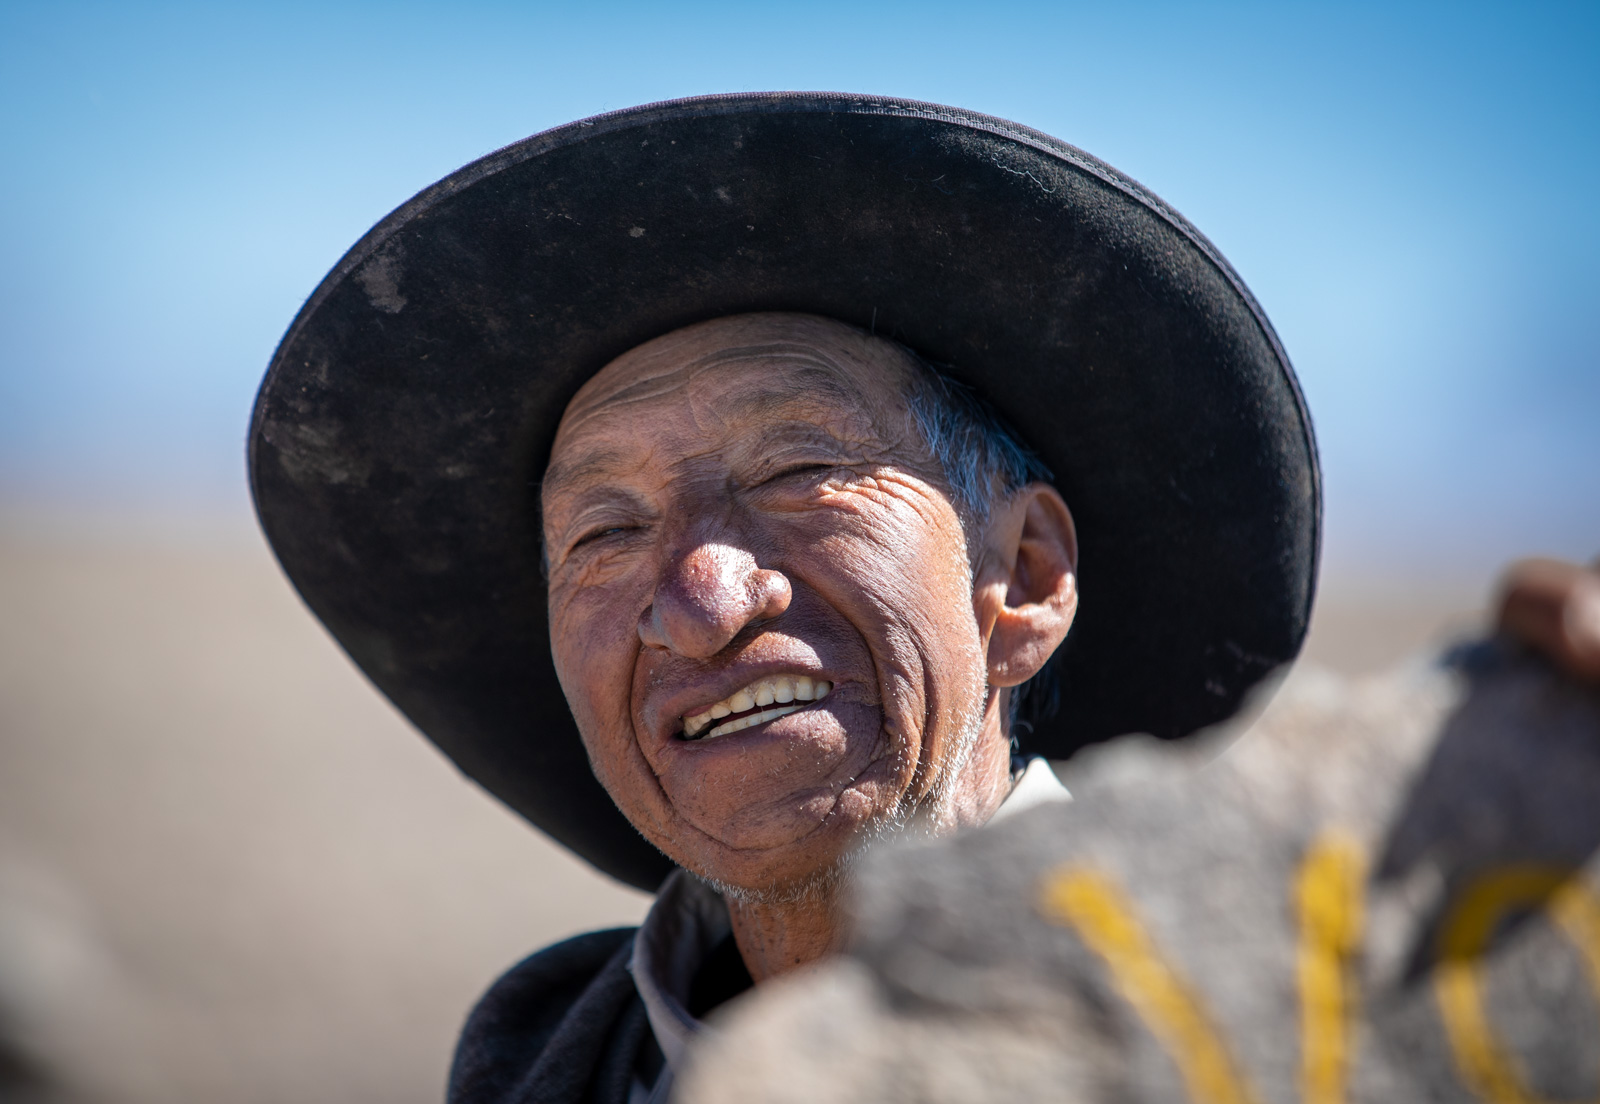 Old Peruvian man living in 5000 meters altitude